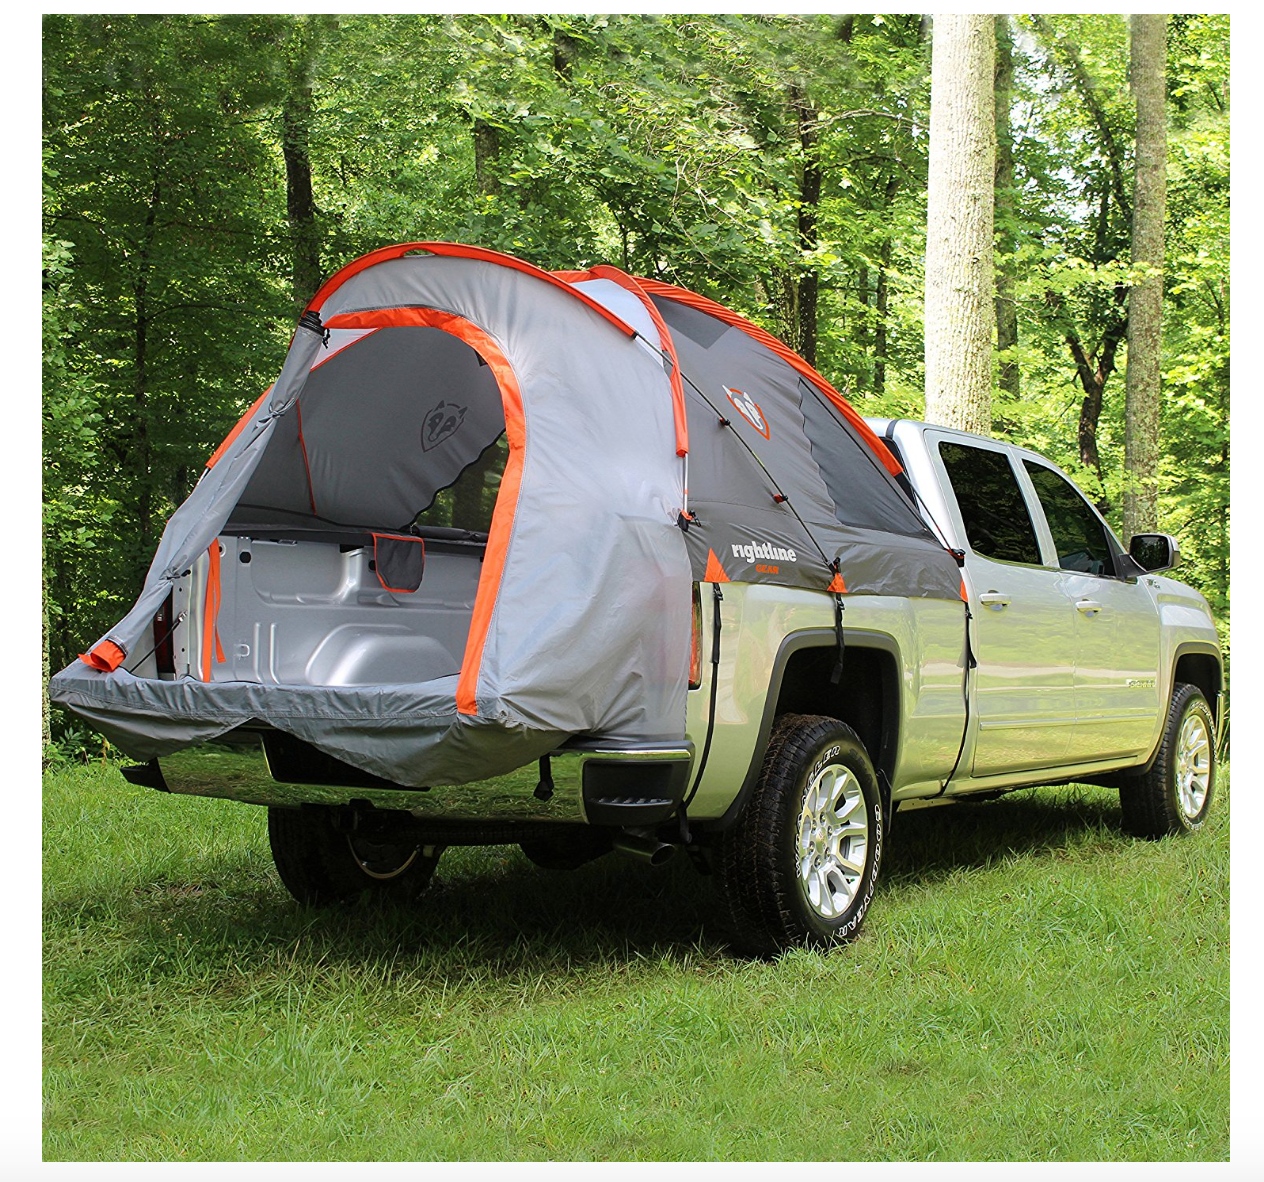 ... Rightline Full Size Standard Bed Truck Tent (5ft-6.5ft) ... & Rightline Full Size Standard Bed Truck Tent (5ft-6.5ft) u2013 1080 Outdoors